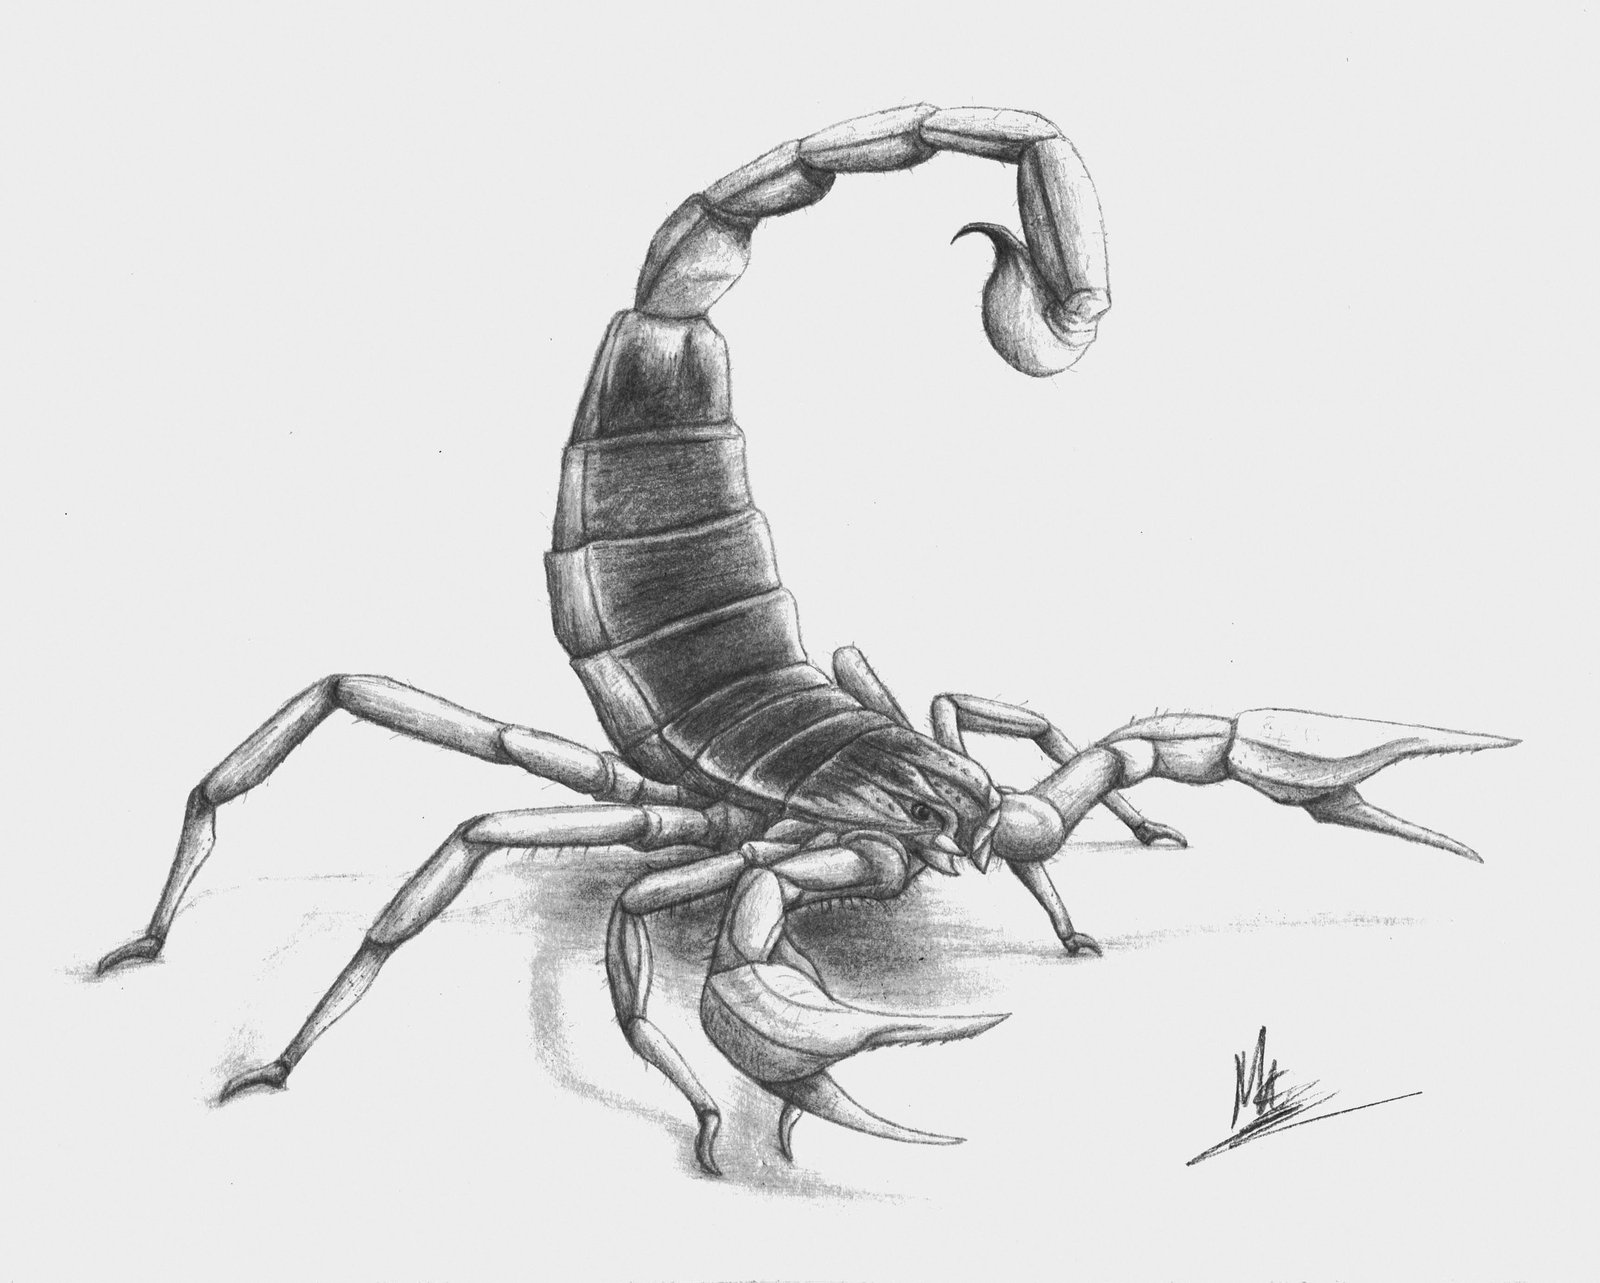 Drawn scorpion pencil drawing On Scorpion by Giganotosaur by